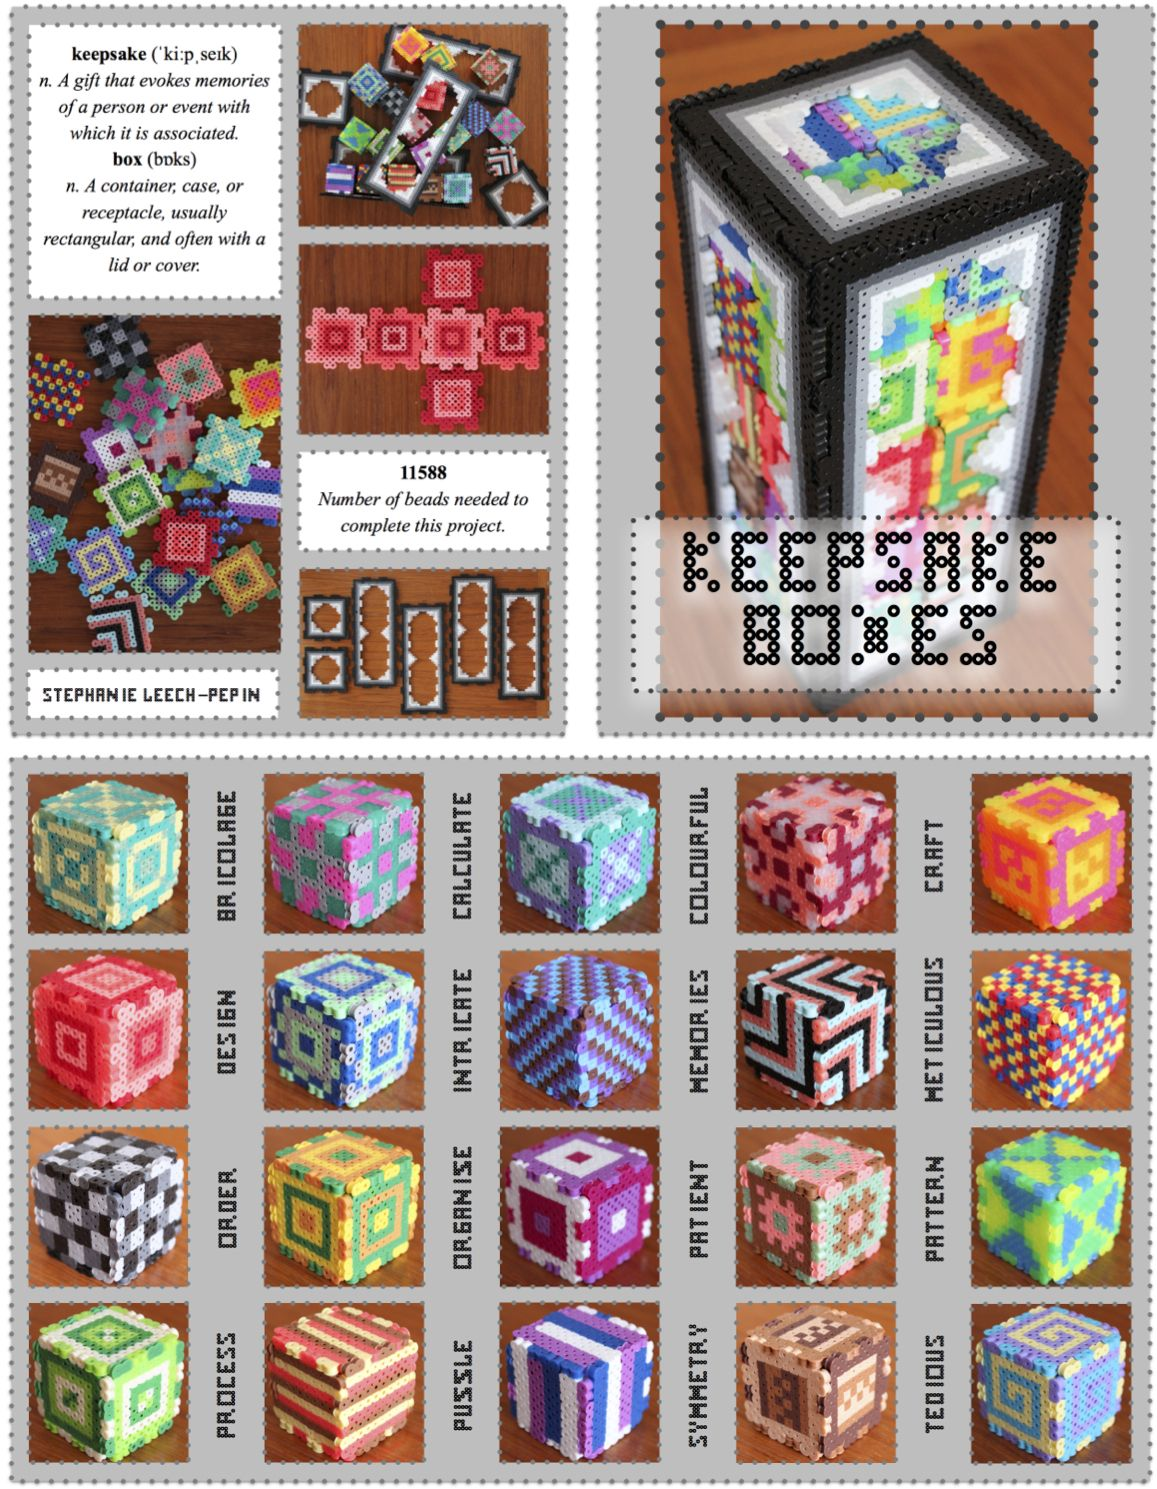 hight resolution of perler bead keepsake boxes so much fun by steph leech pepin